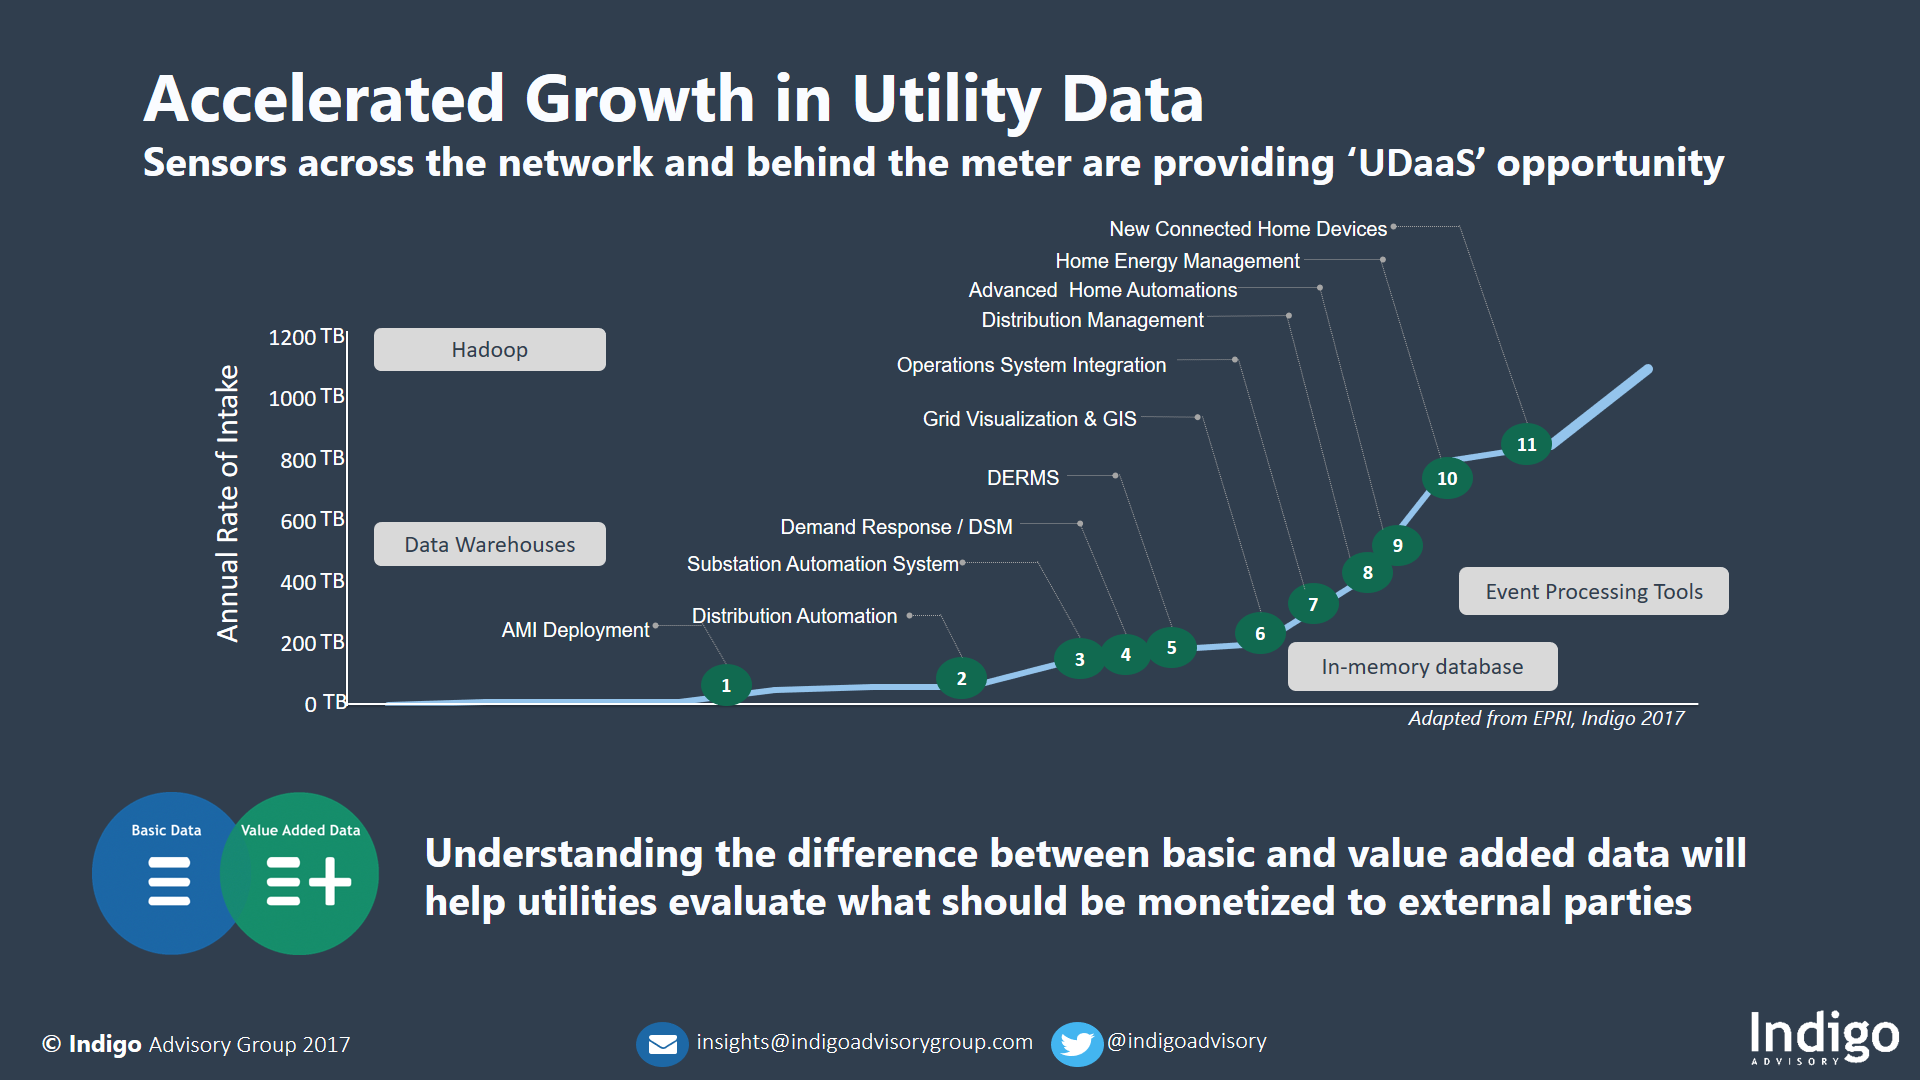 Accelerated Growth in Utility Data